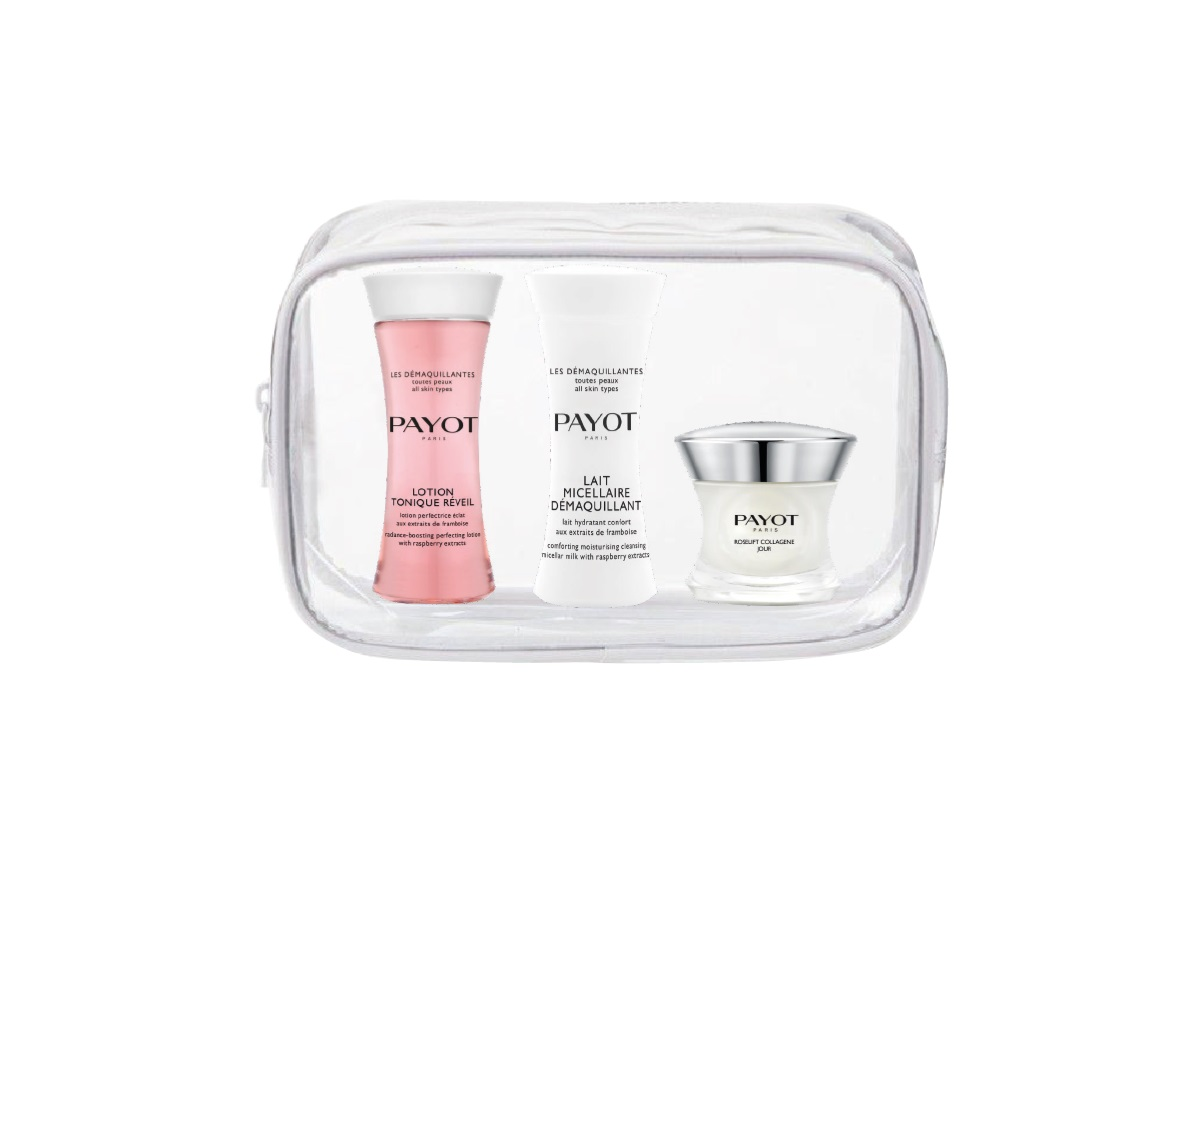 Payot Lift & Firm Facial In A Bag